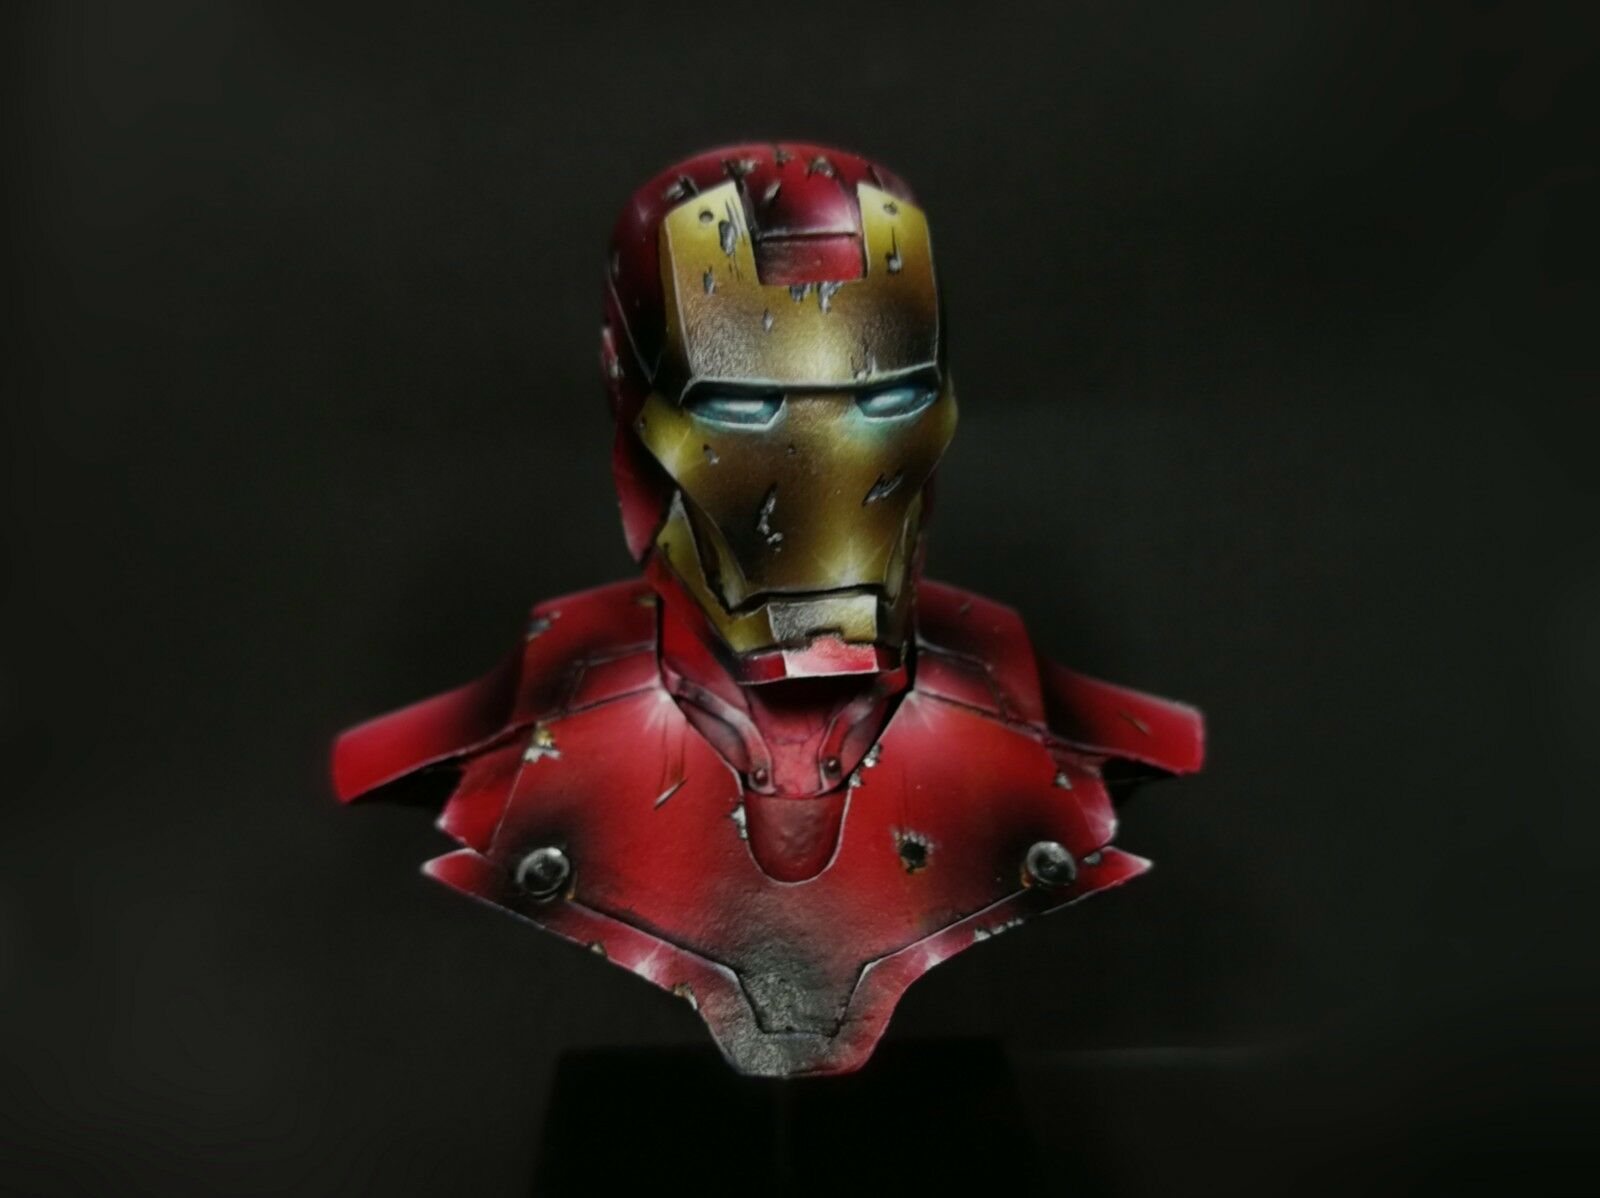 (PTM) PAINTED MARVEL MARVEL MARVEL AVENGERS - 1 10 MINIATURE BUST - IRON MAN (resin) 701a89